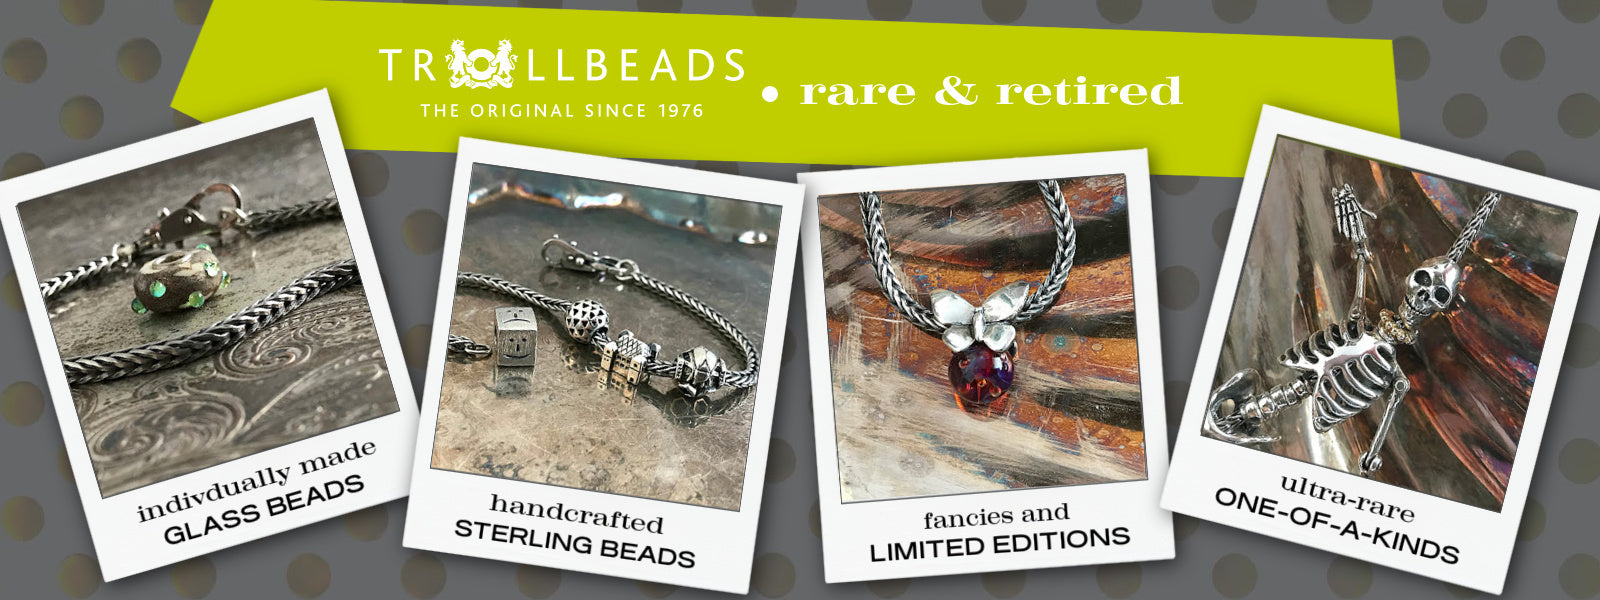 Suzie Q Studio has a treasure vault full of Rare and Retired Trollbeads... and we're making them available to you. We have Rare & Retired Glass and Sterling Silver Beads, treasures, Limited Editions and Ultra-Rare Trollbeads.